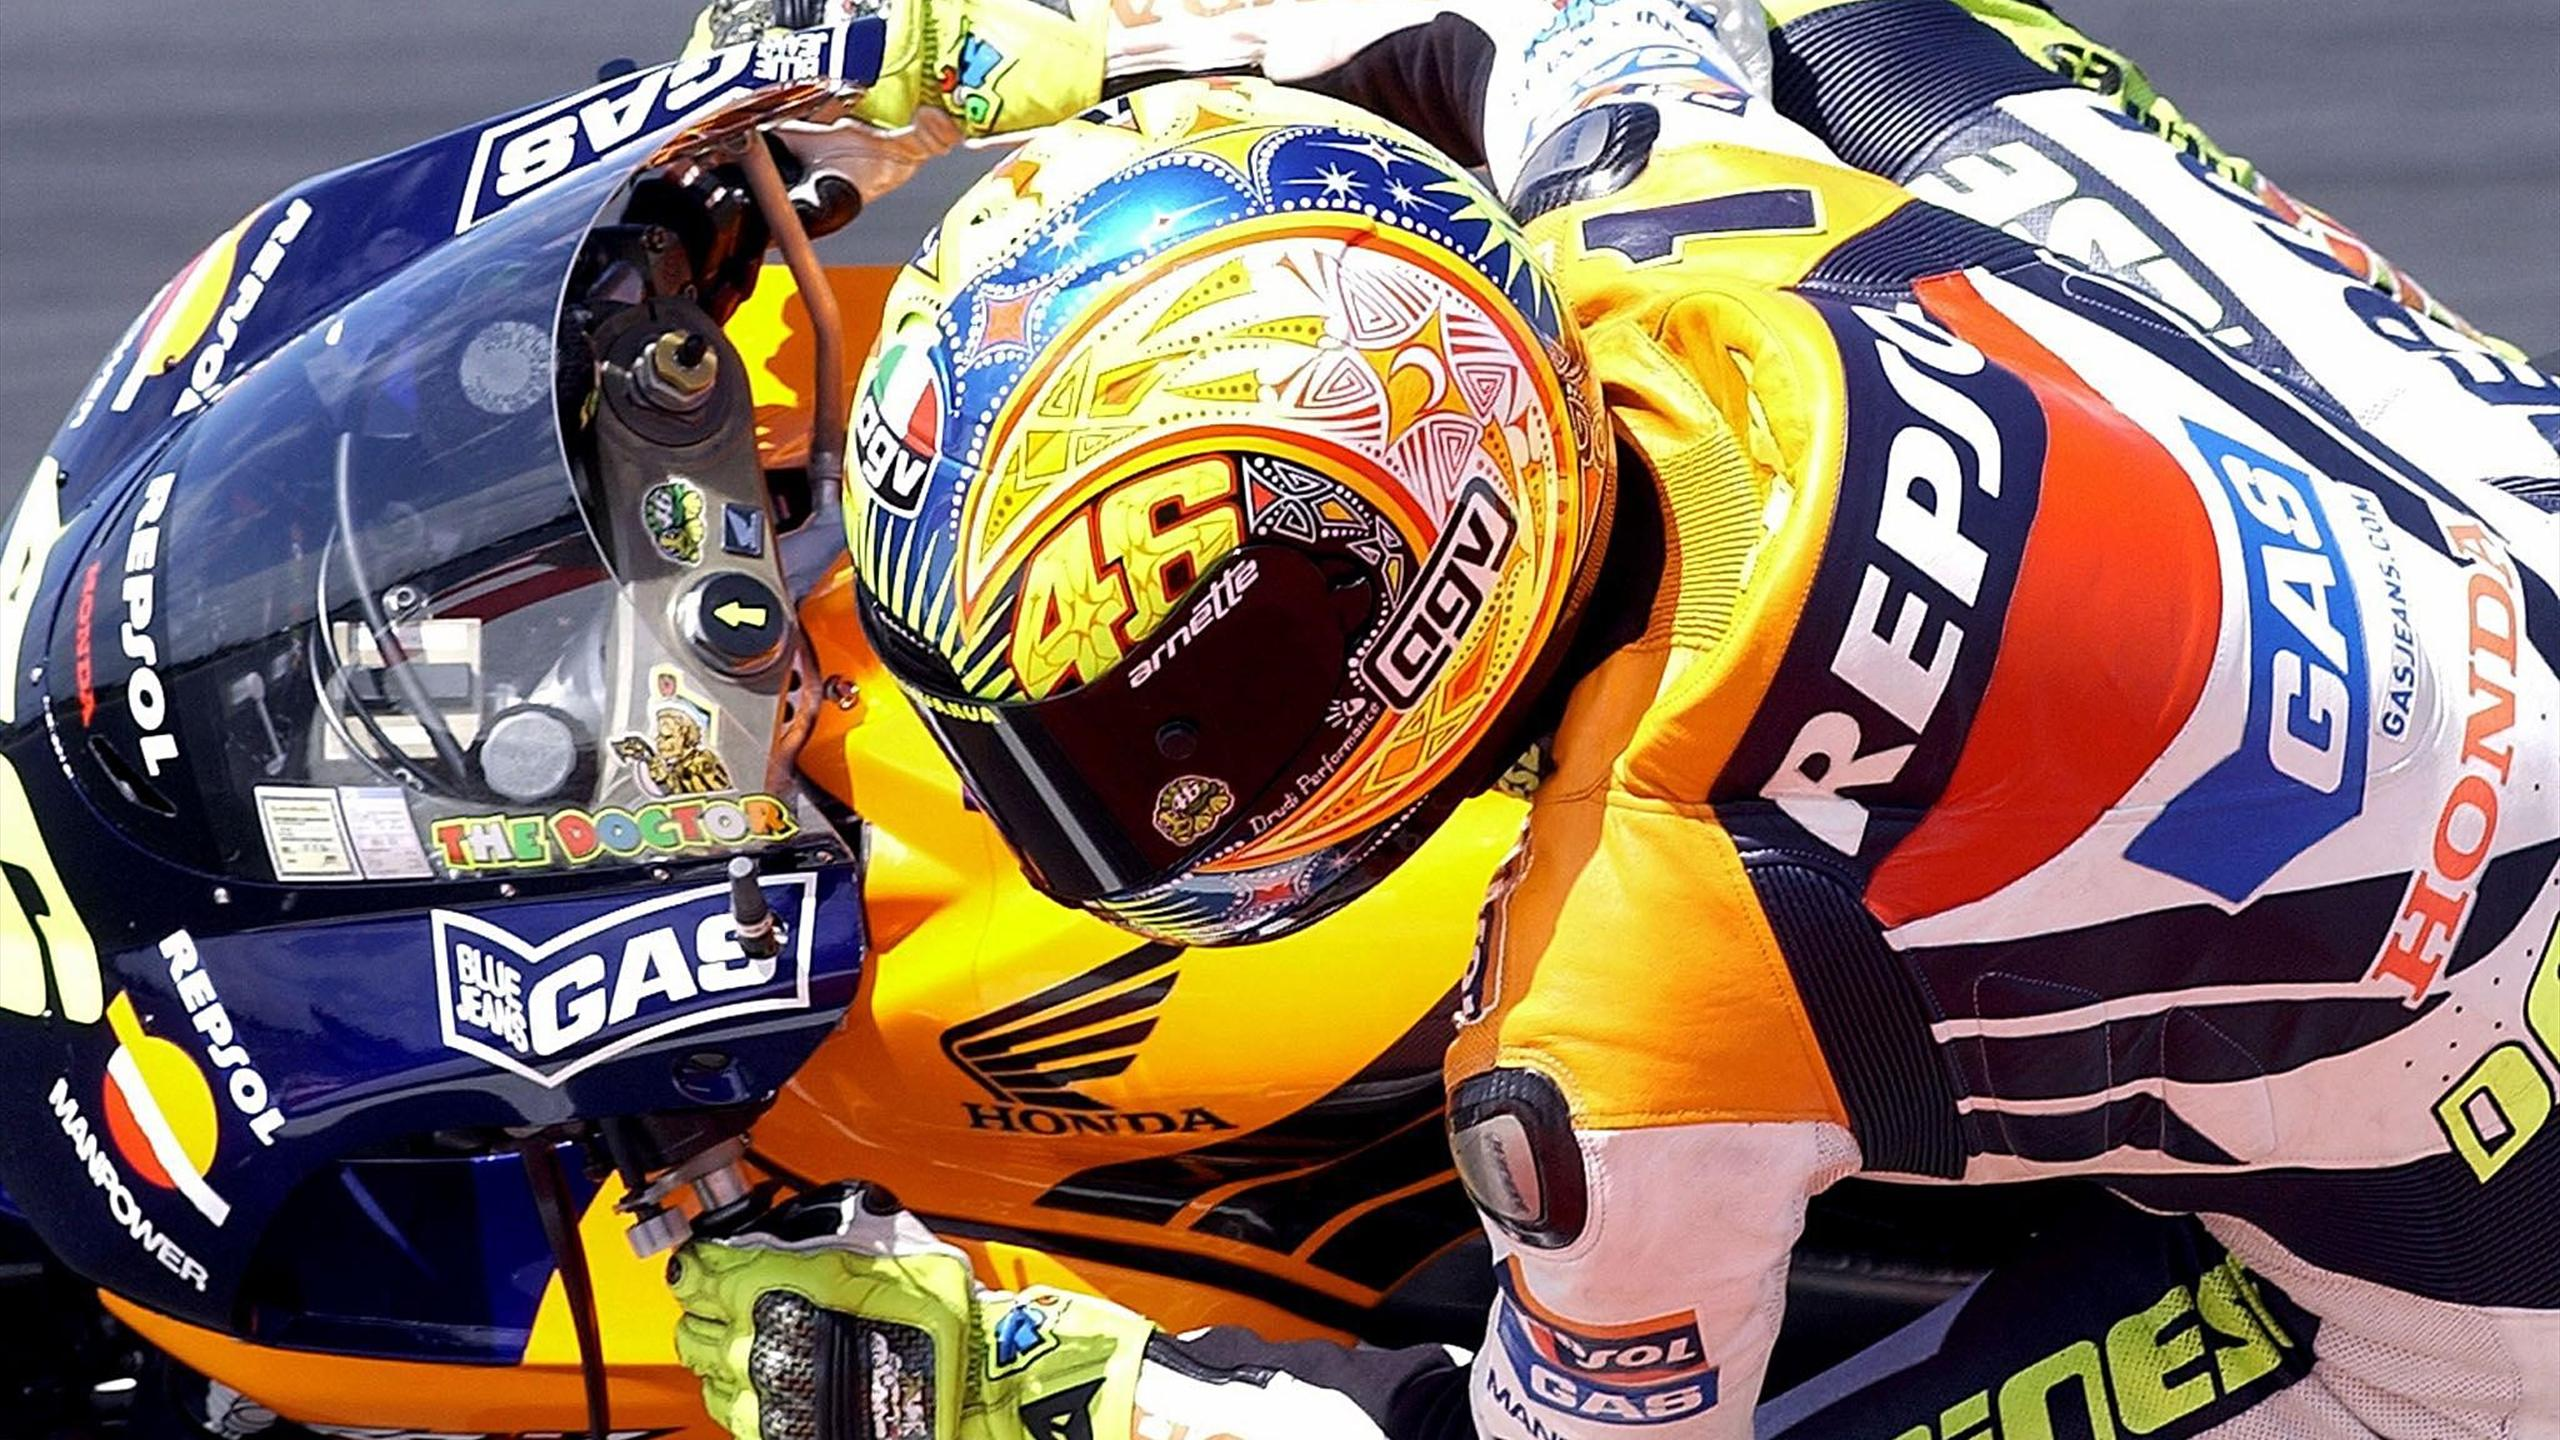 Valentino Rossi of Italy takes his Honda into a corner during the second practice session of the Australian MotoGP in Phillip Island, 19 October 2002